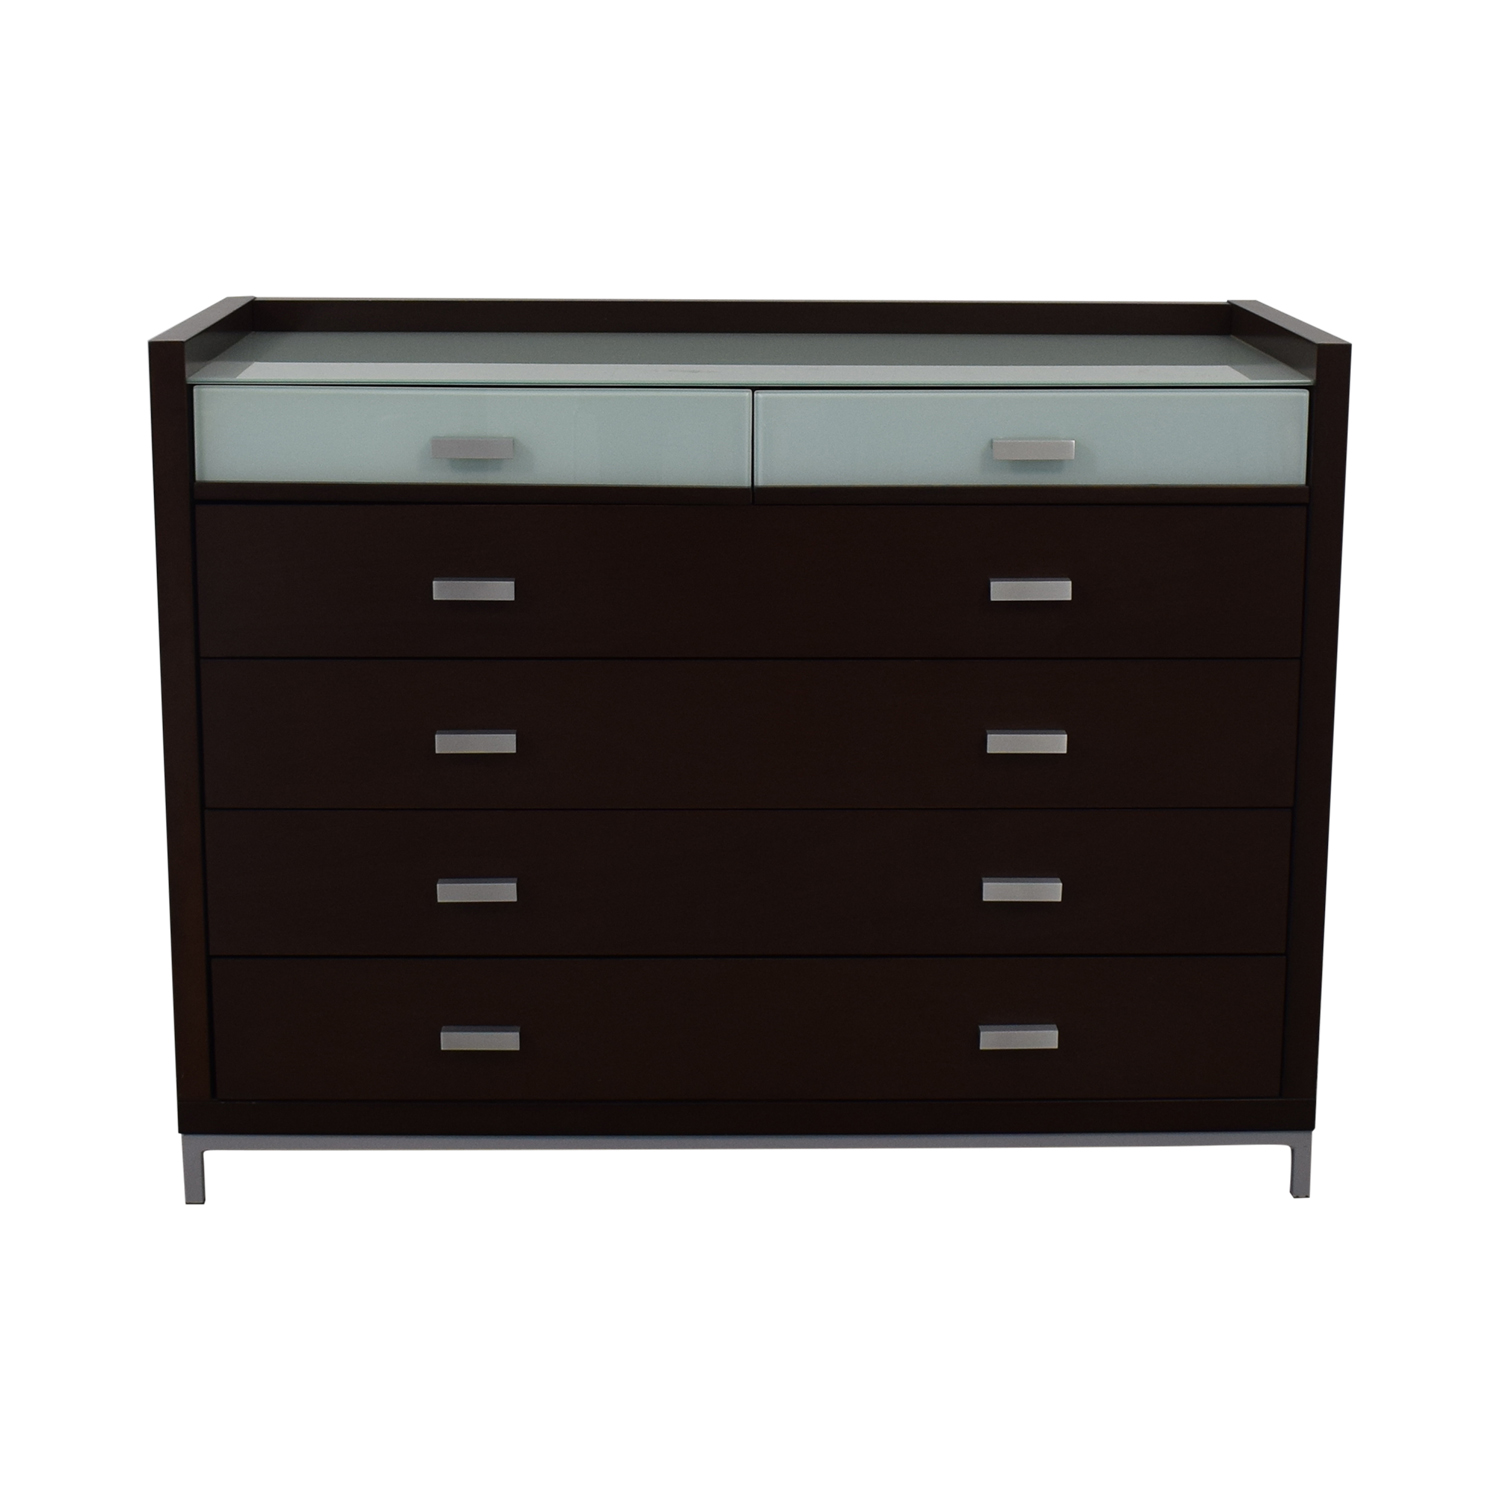 Six-Drawer Dresser With Frosted Glass